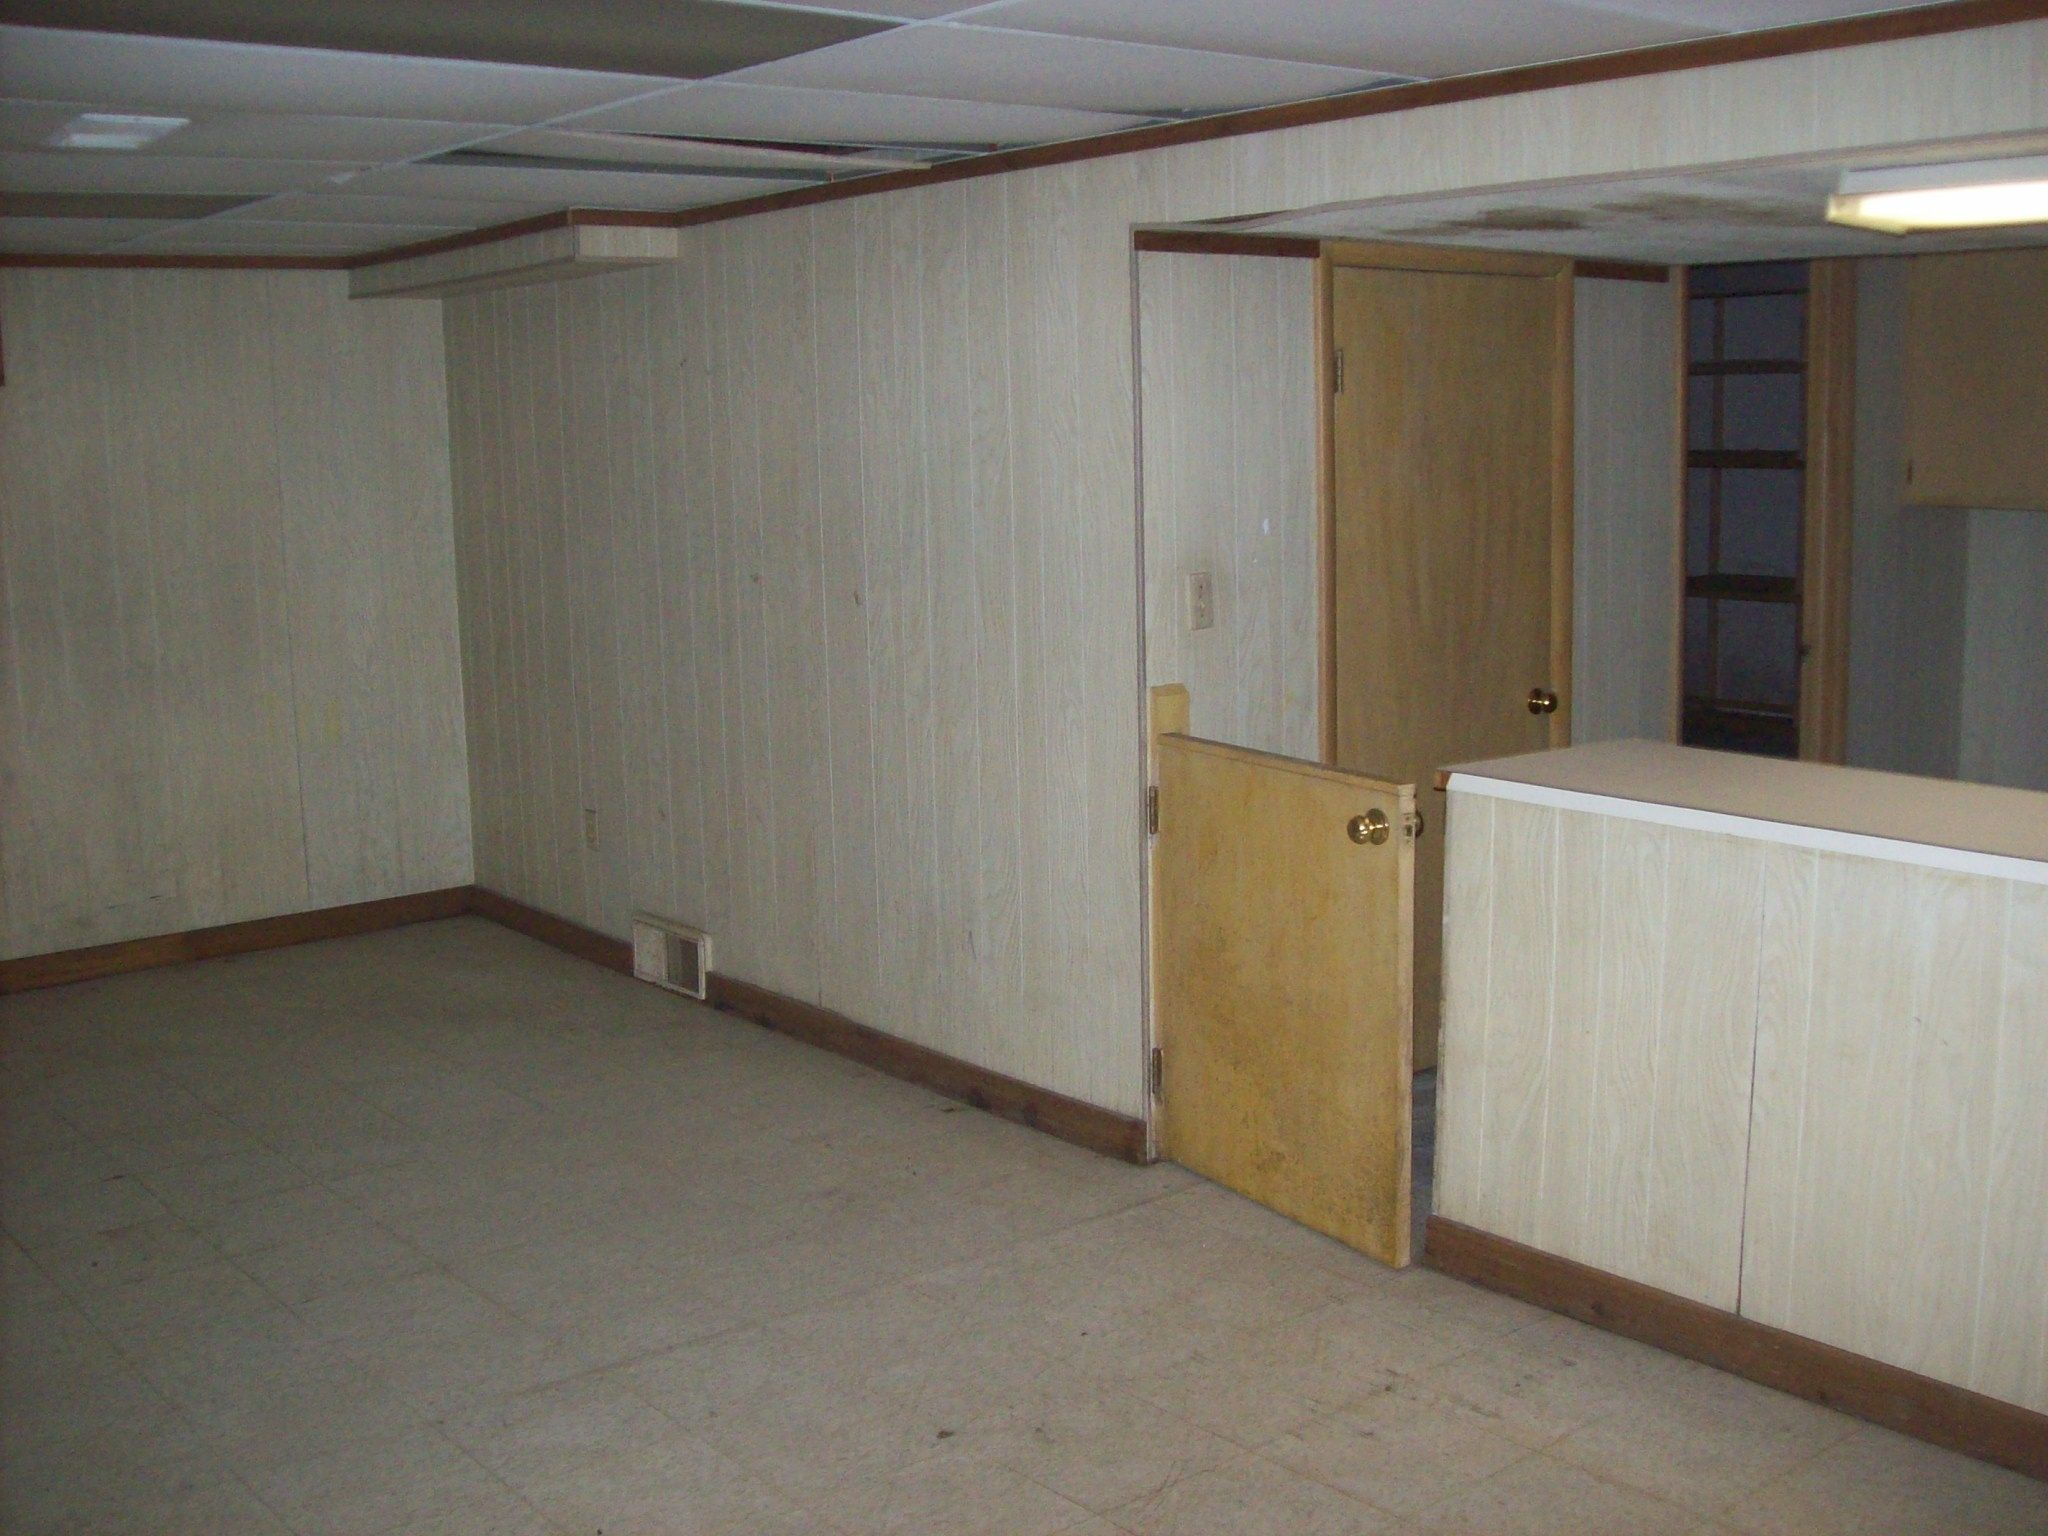 Basement Mmm Paneling Water Damaged Paneling At That Drop Ceiling Too Plan Save Whatever Paneling We Can Replace Wh Dropped Ceiling Paneling House